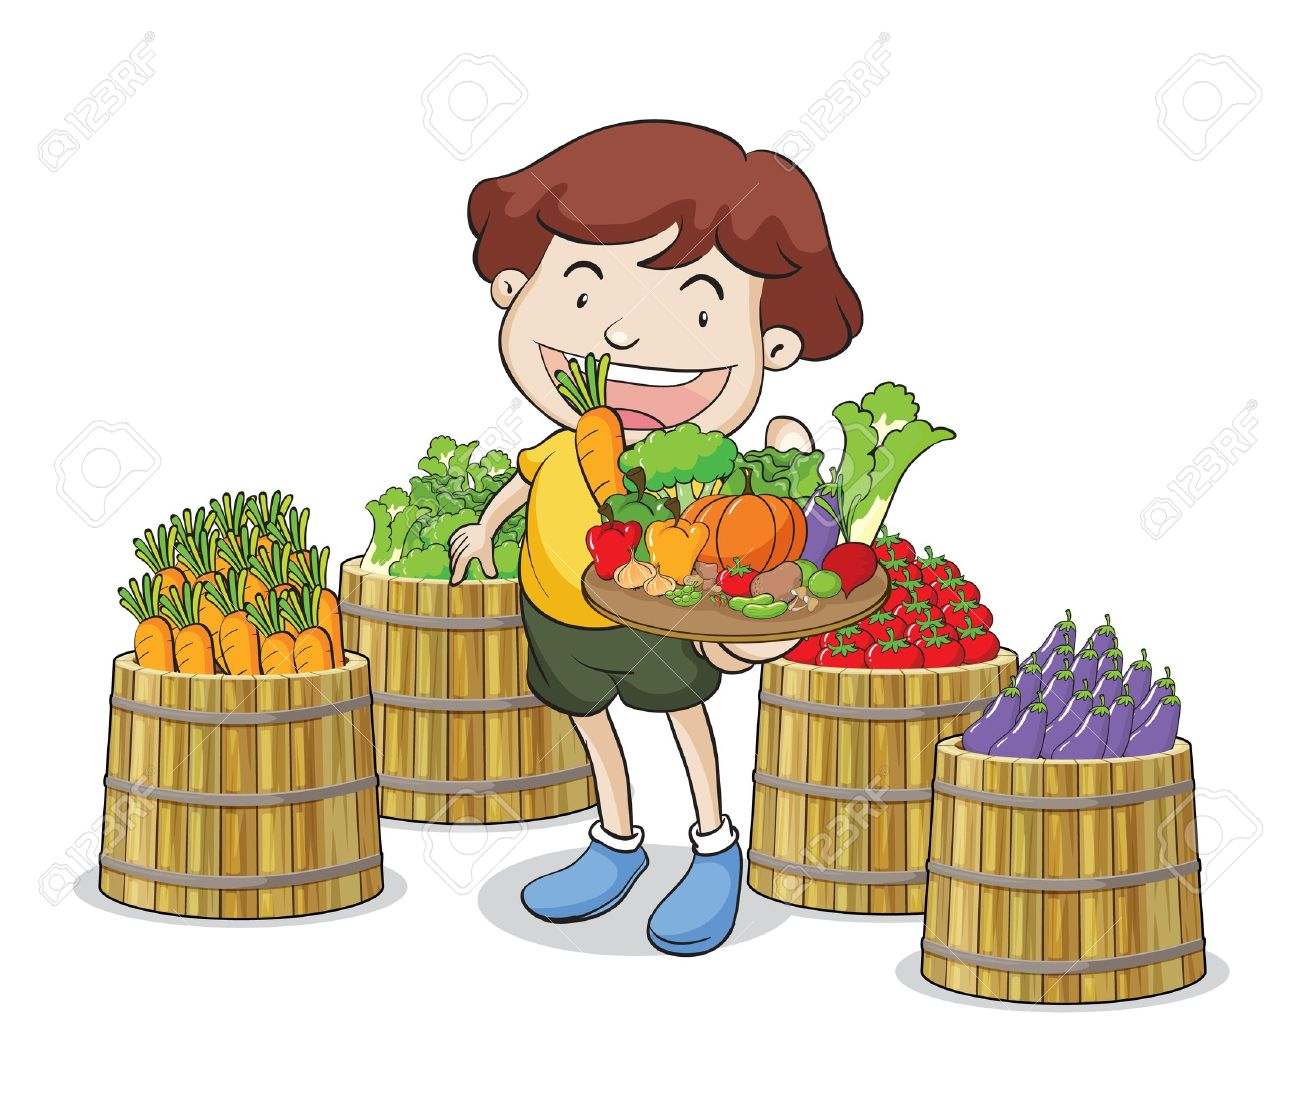 Buying fruits cliparts picture free download Child eating vegetables clipart 3 » Clipart Station picture free download